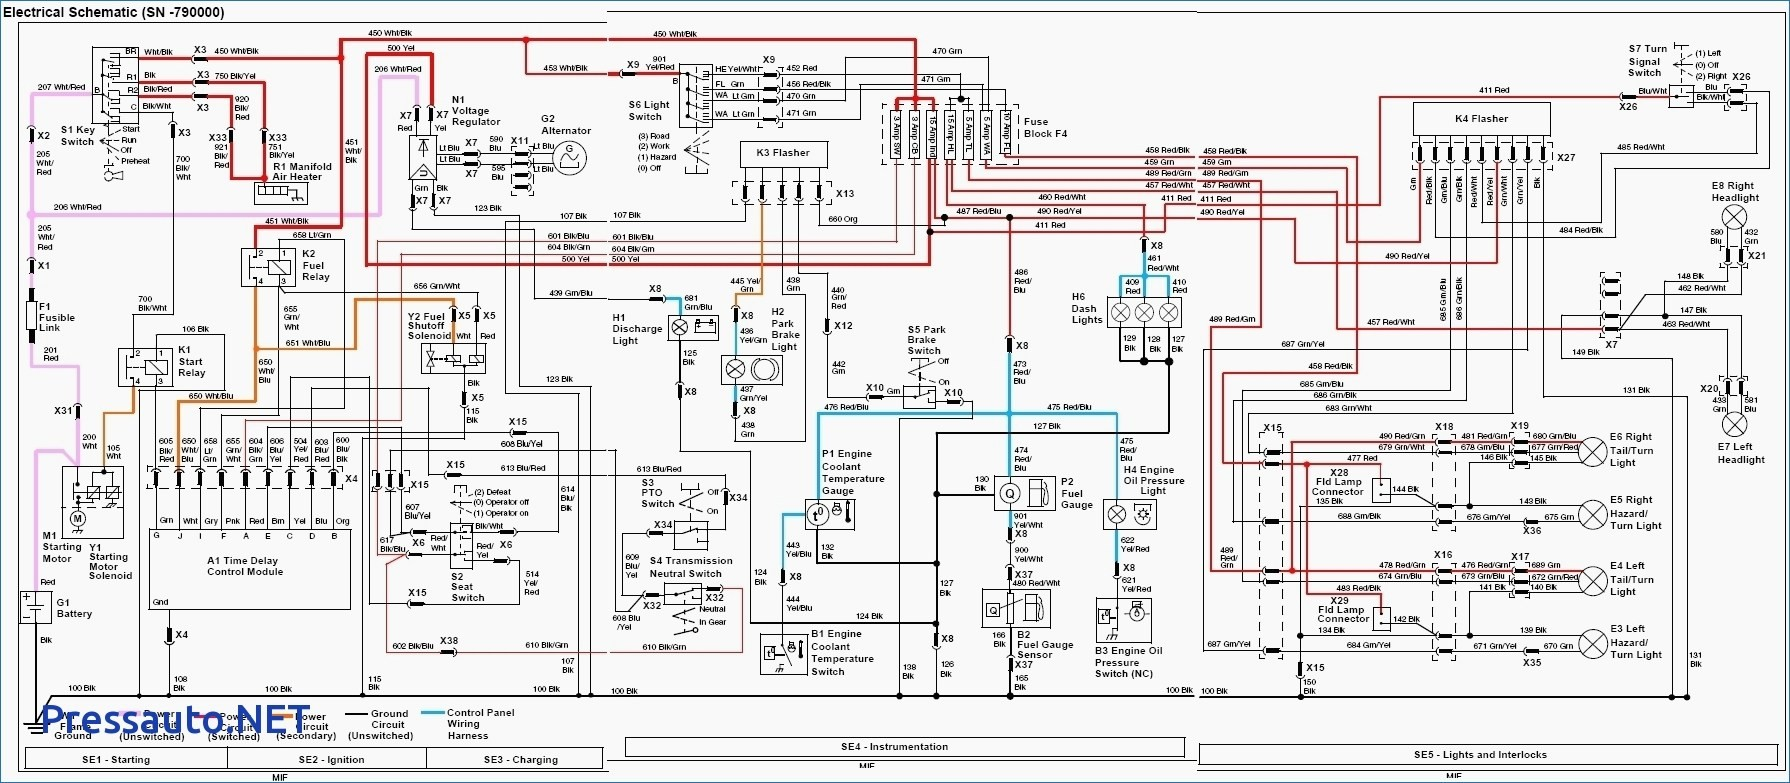 X748 Wiring Diagram - Wiring Diagram G11 on